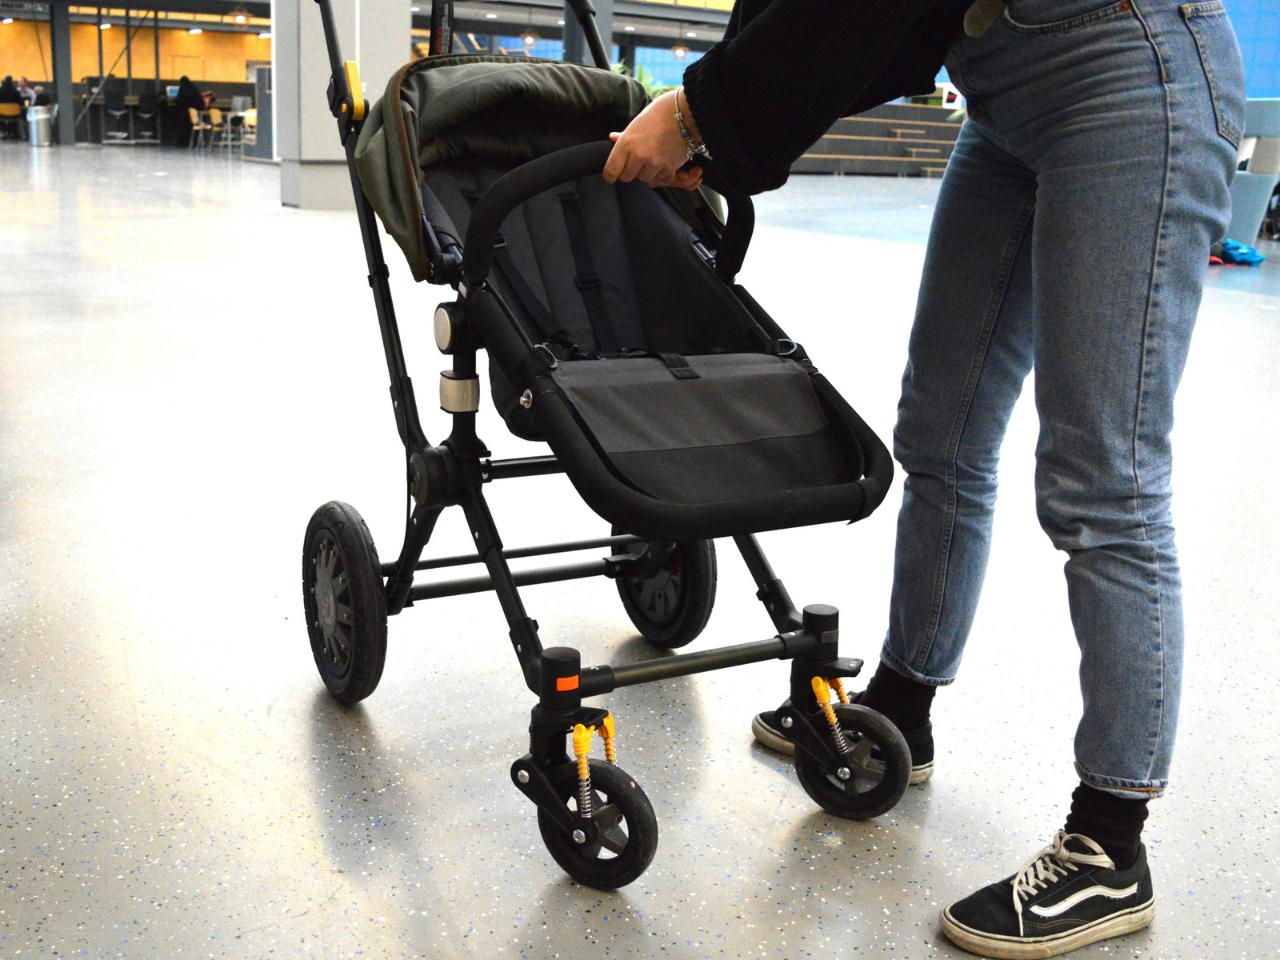 Students from the Delft University of Technology designed a 3D-printed swivel wheel lock for Bugaboo strollers.